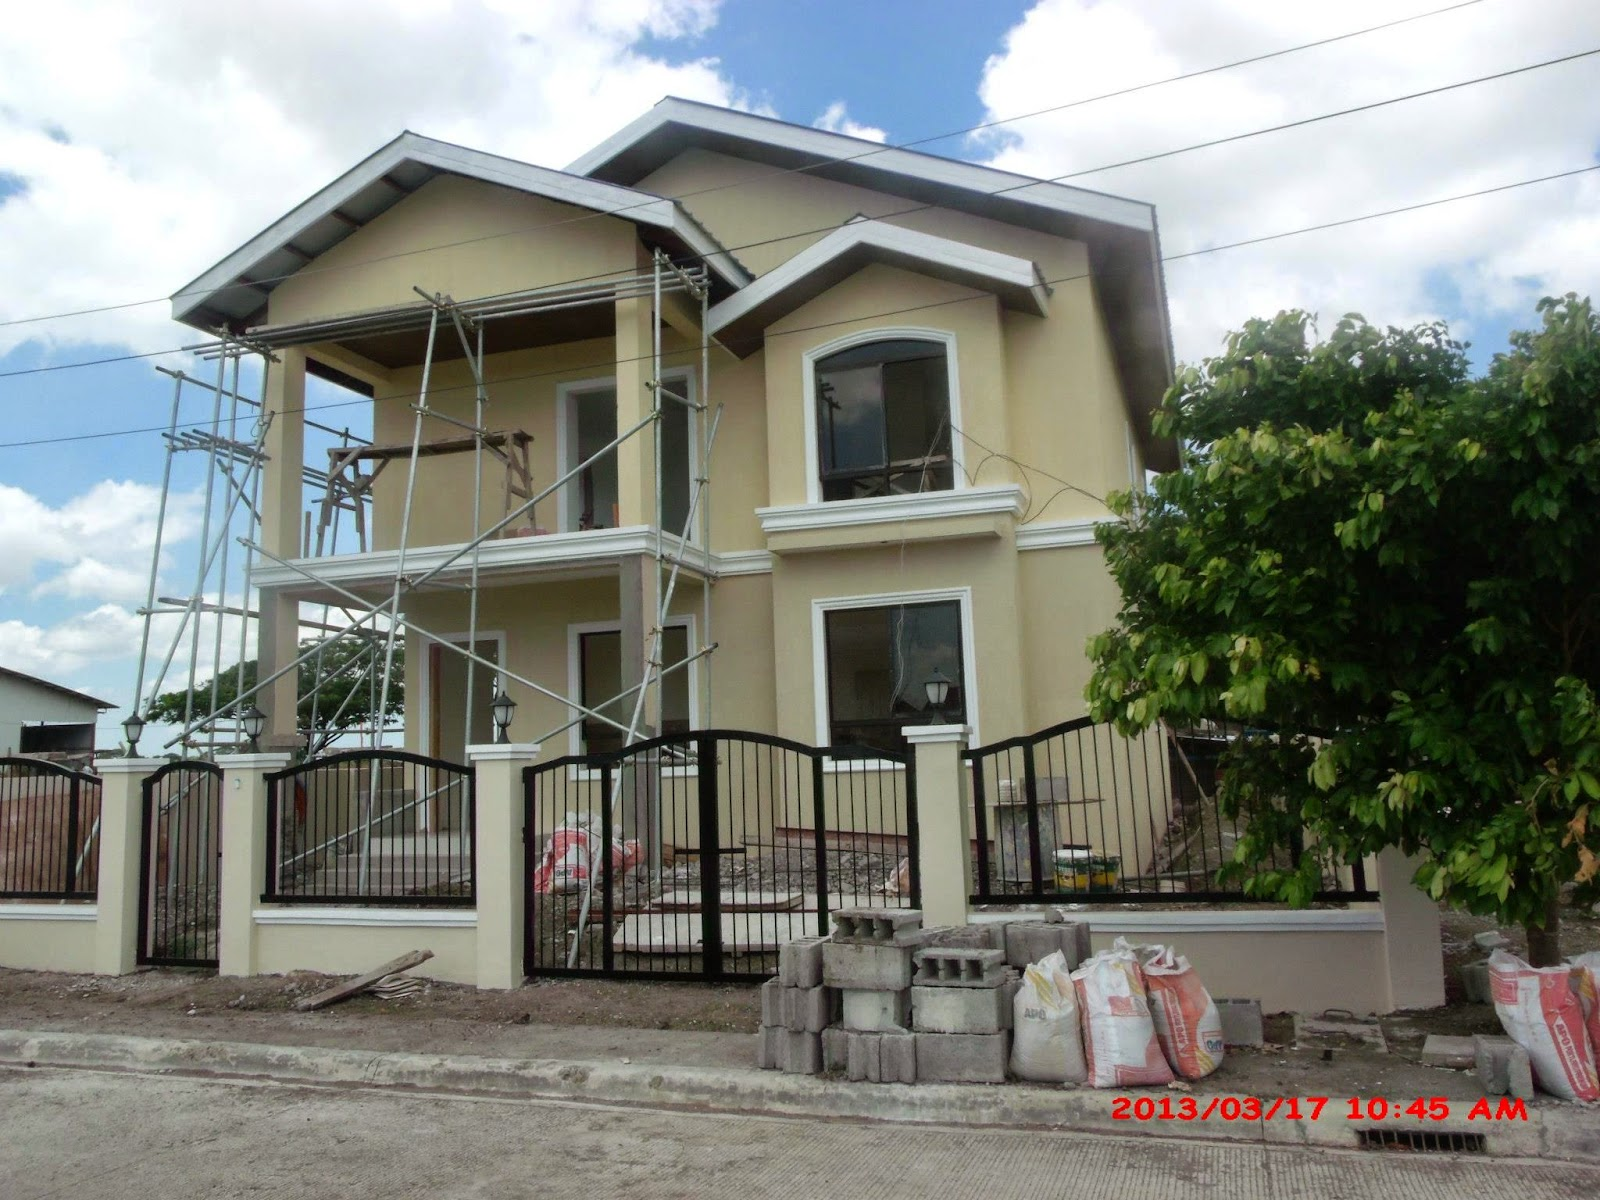 House Plans And Designs In Jamaica - Home & Architecture